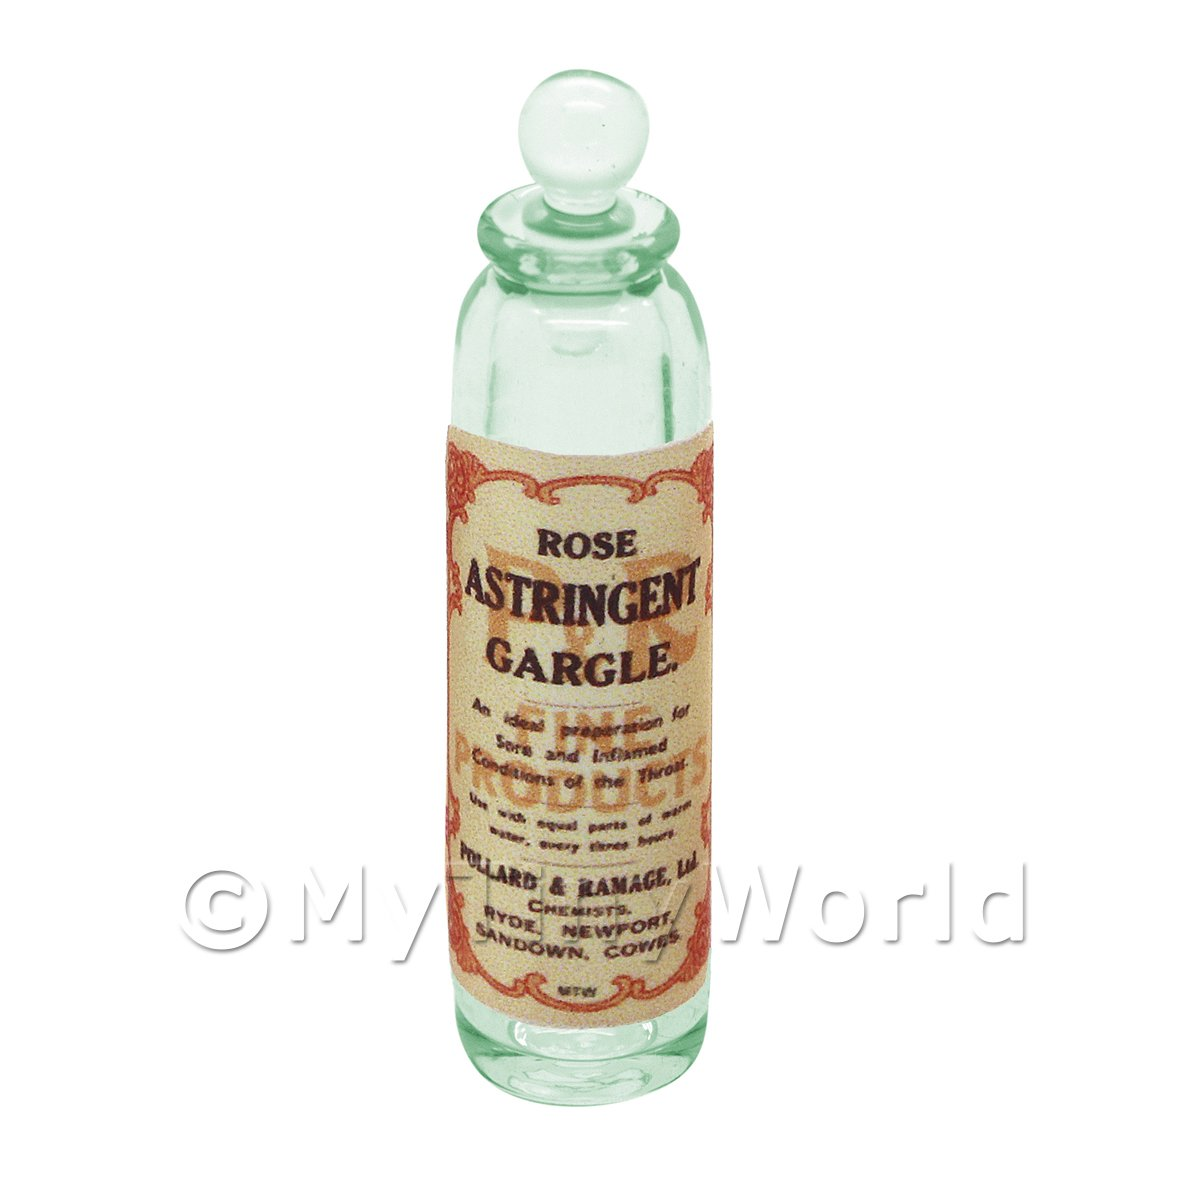 Miniature Rose Astringent Gargle Green Glass Apothecary Bottle